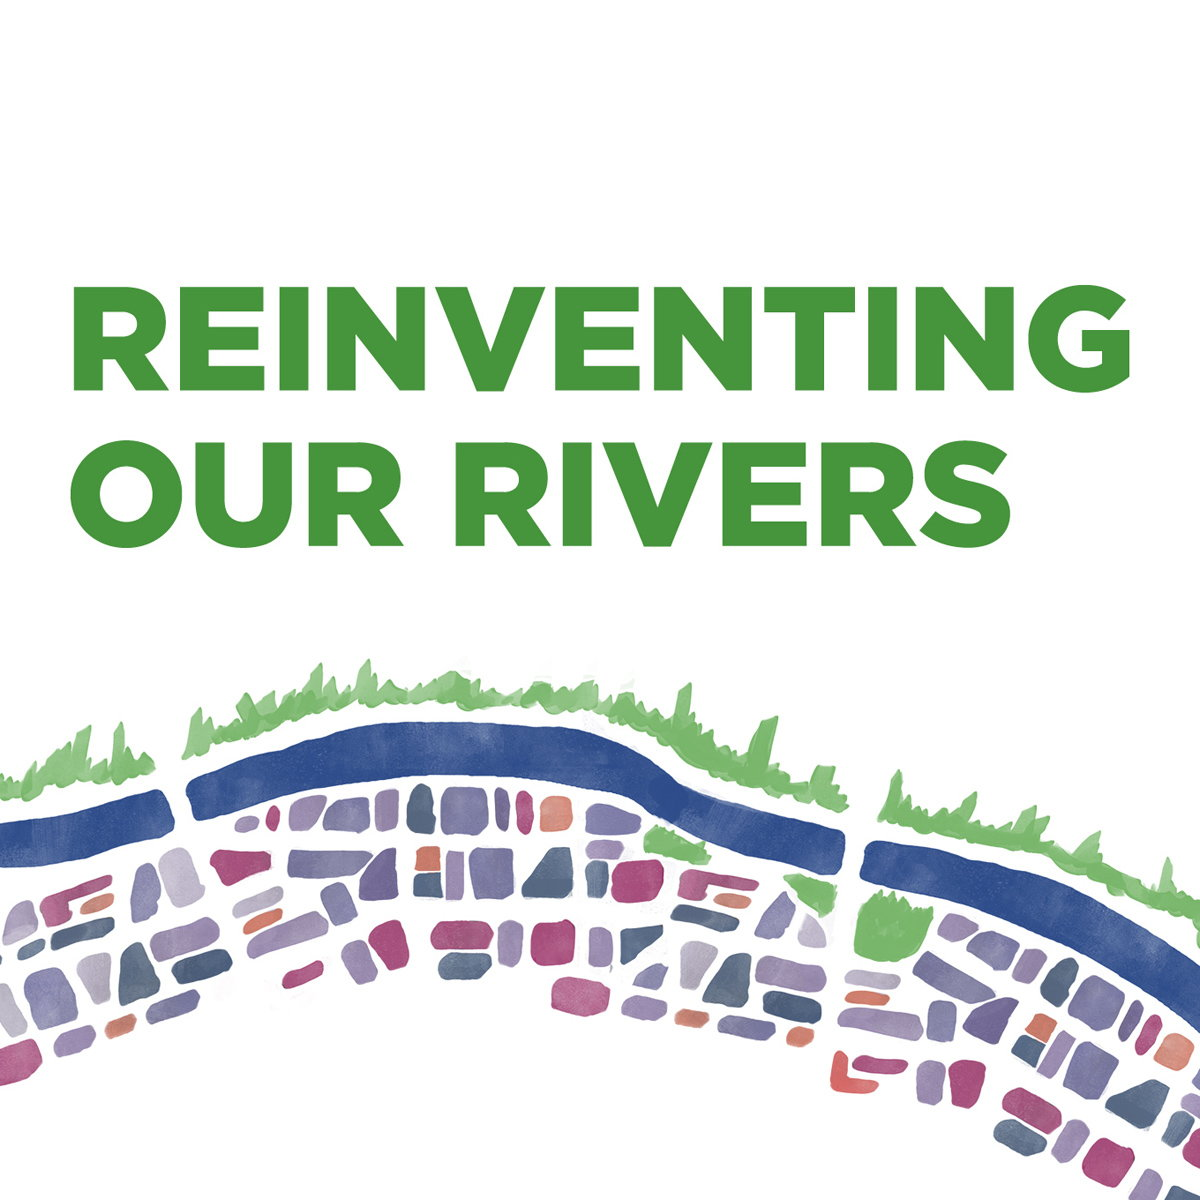 Reinventing Our Rivers - Call for Ideas